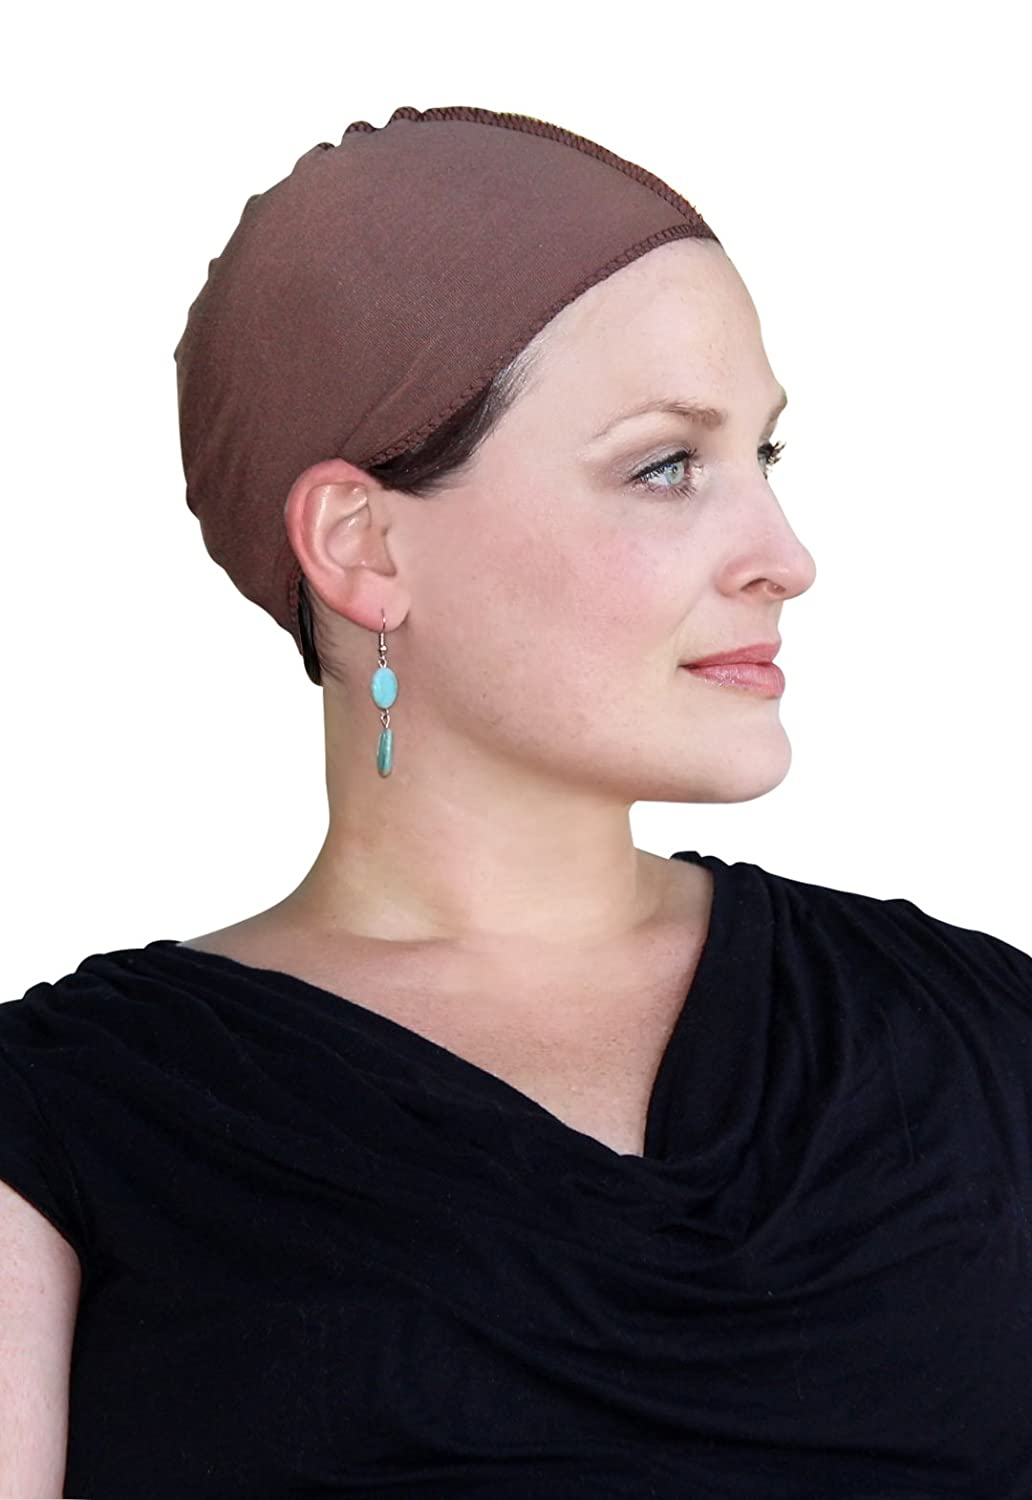 Bamboo Wig Cap and Soft Chemo Hat Liner for Hair Loss